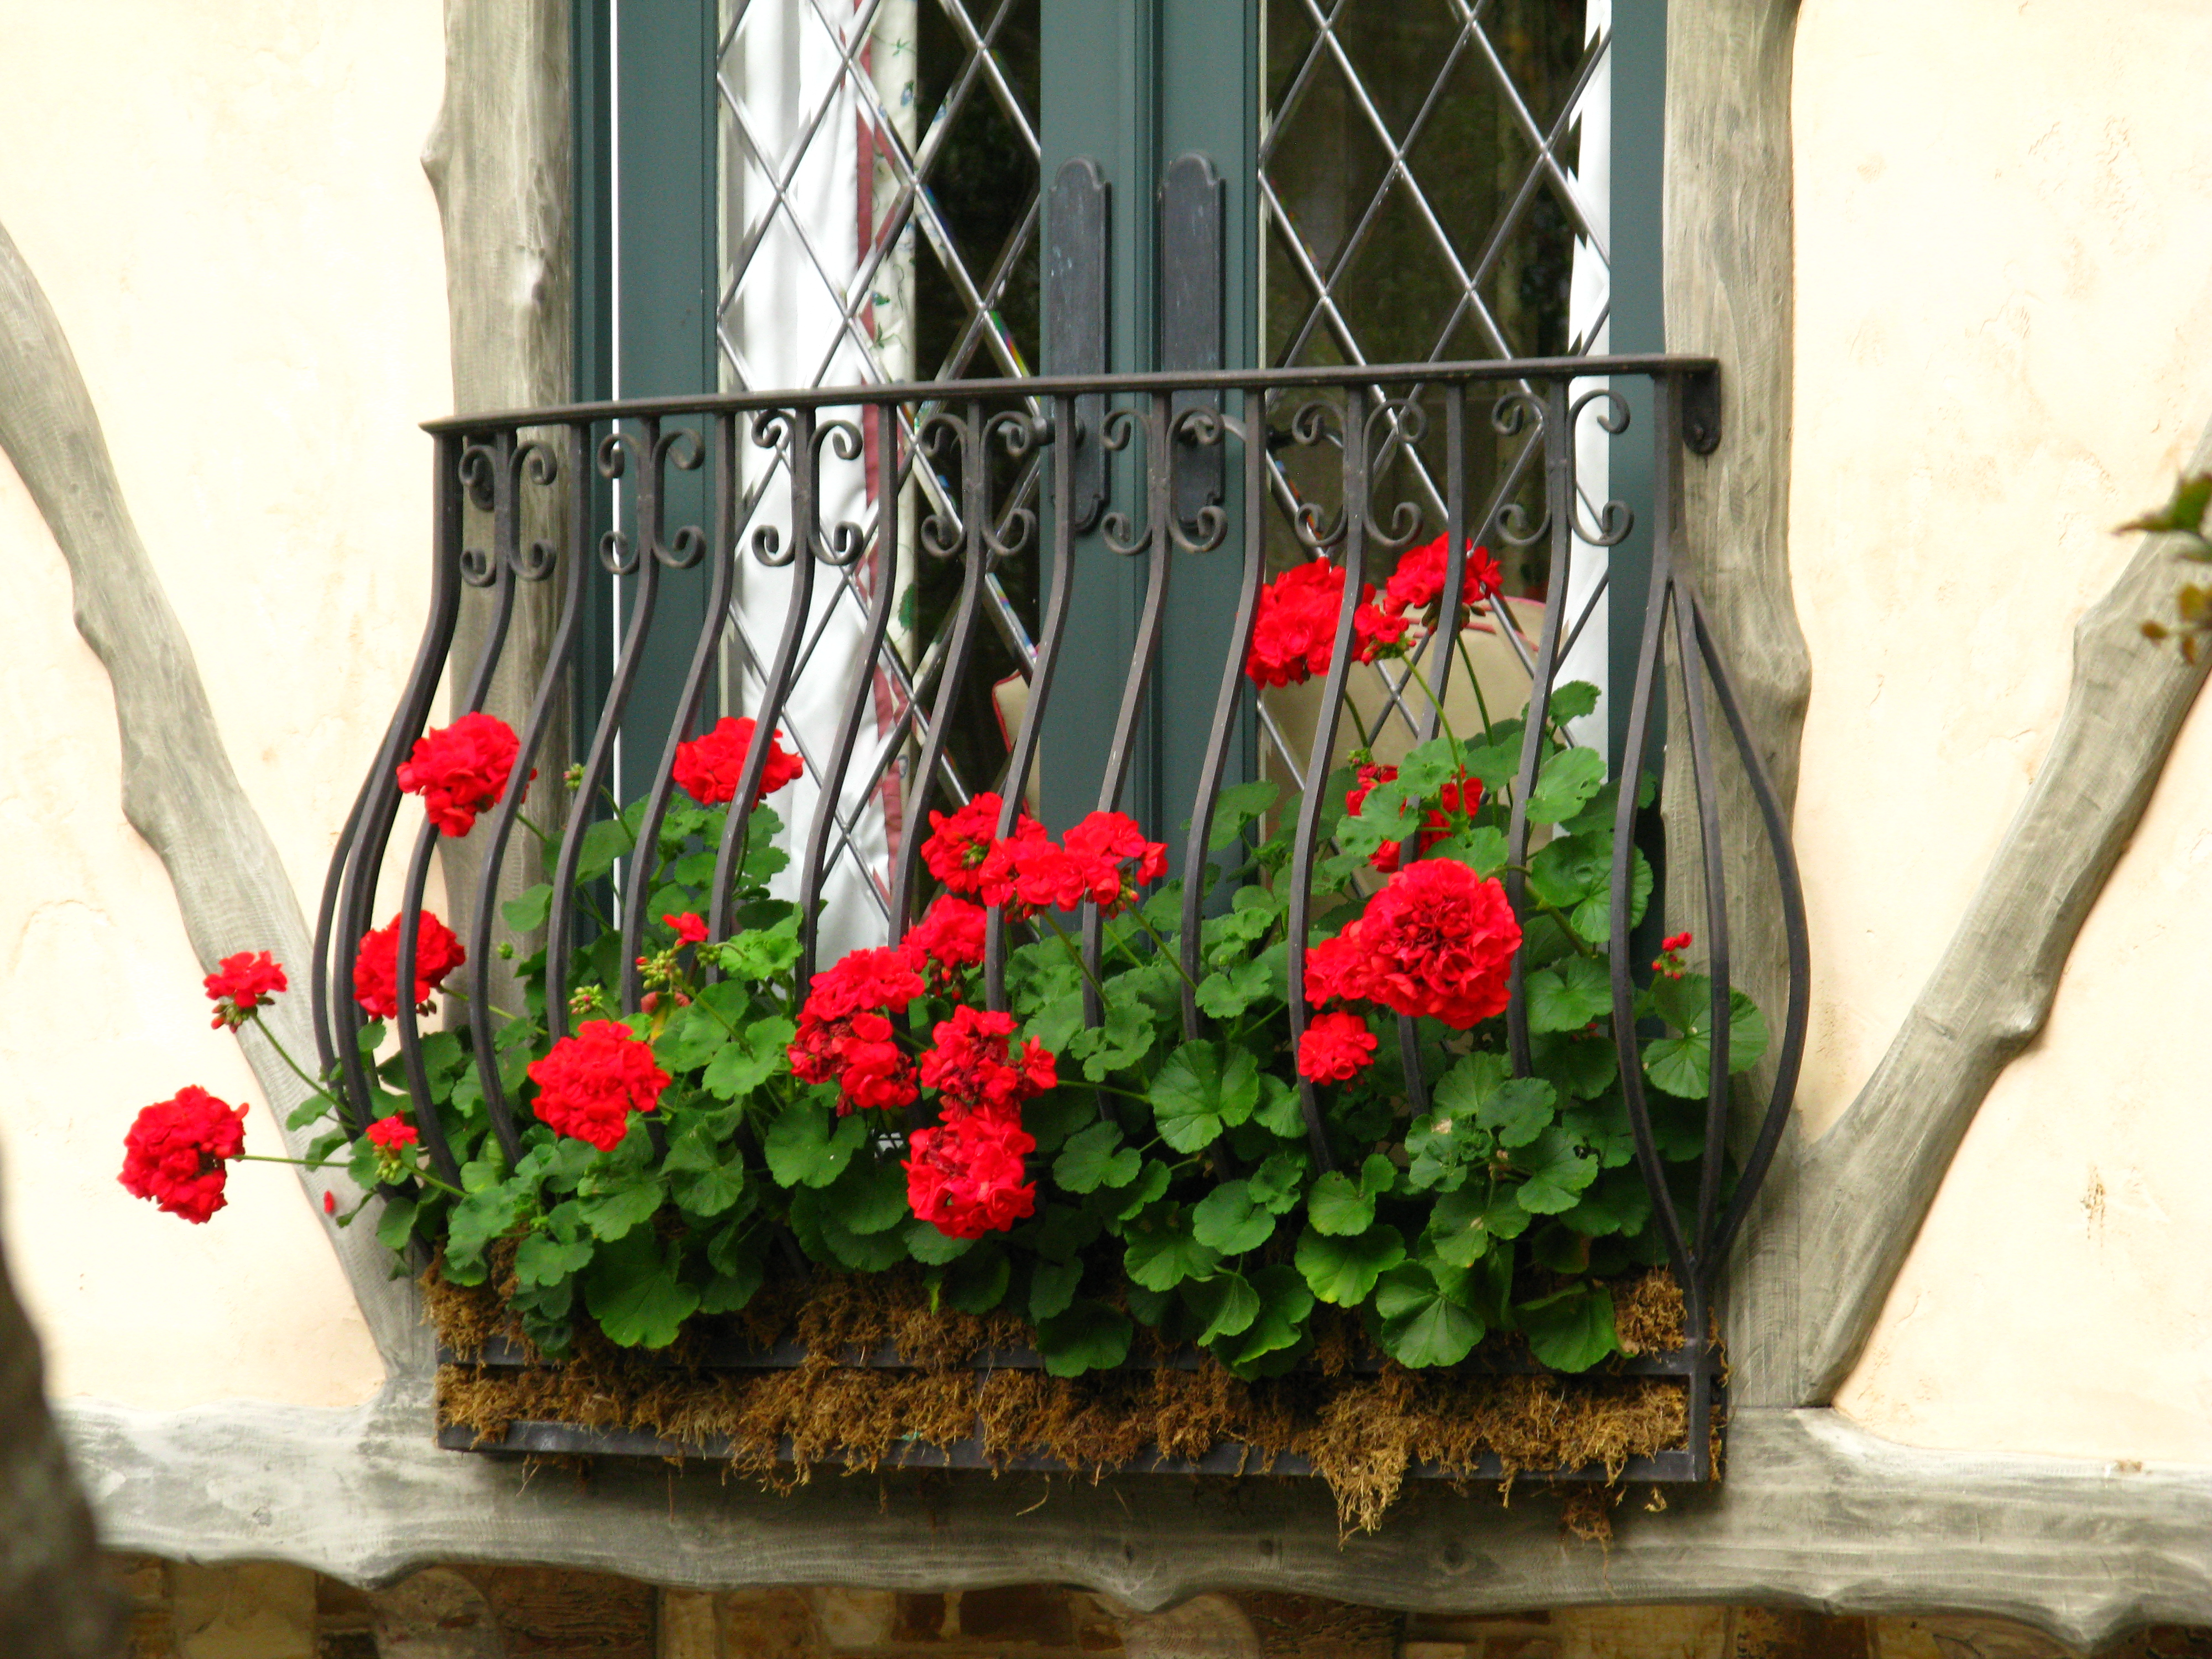 Window Boxes In Carmel Adding Charm To The Fairytale